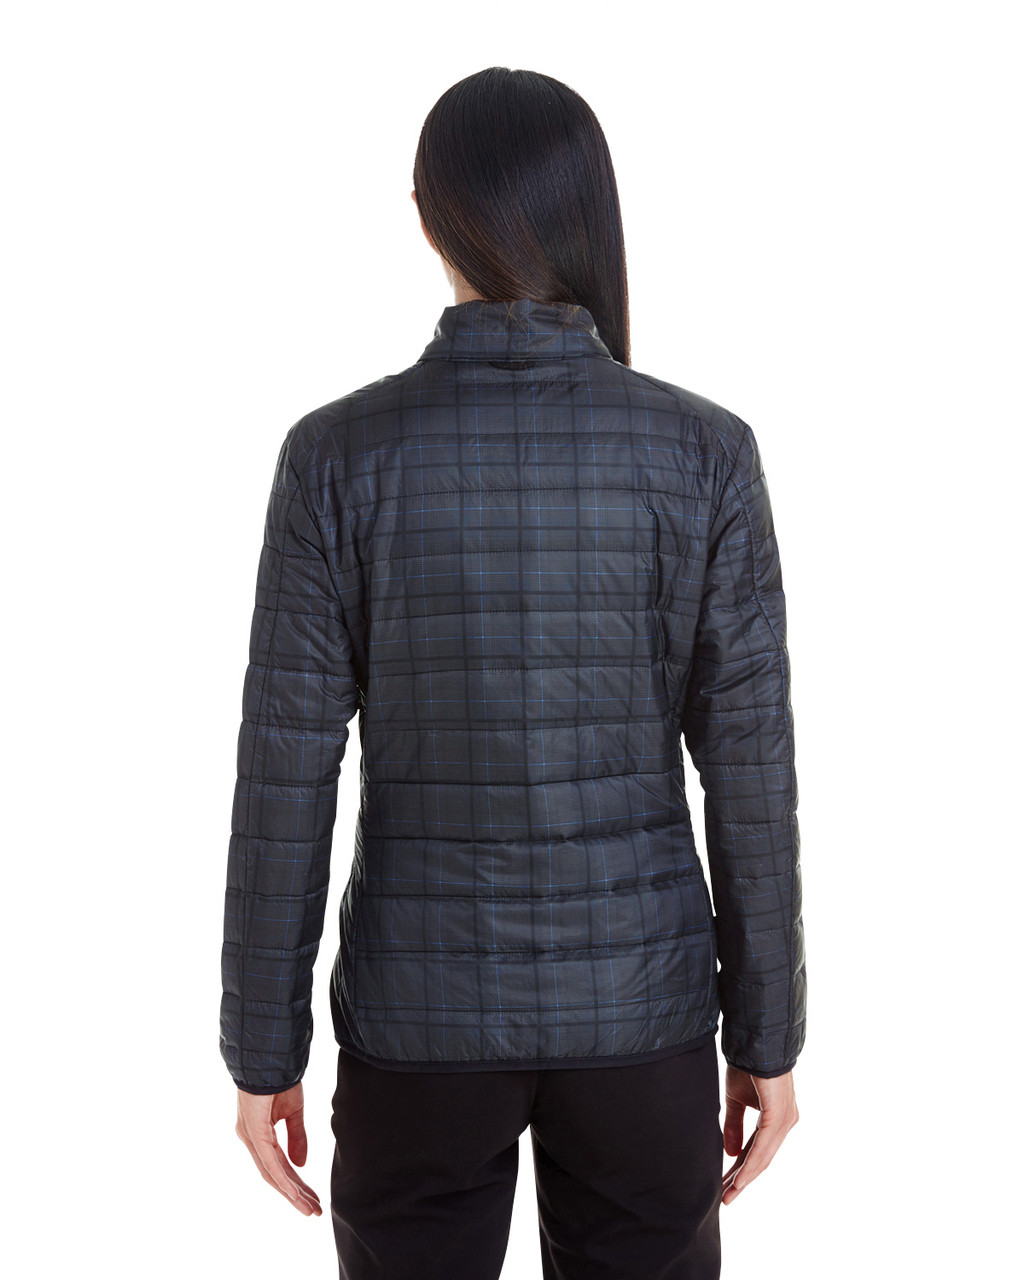 Plaid - BACK - NE701W Ash City - North End Ladies' Portal Interactive Printed Packable Puffer Jacket | Blankclothing.ca